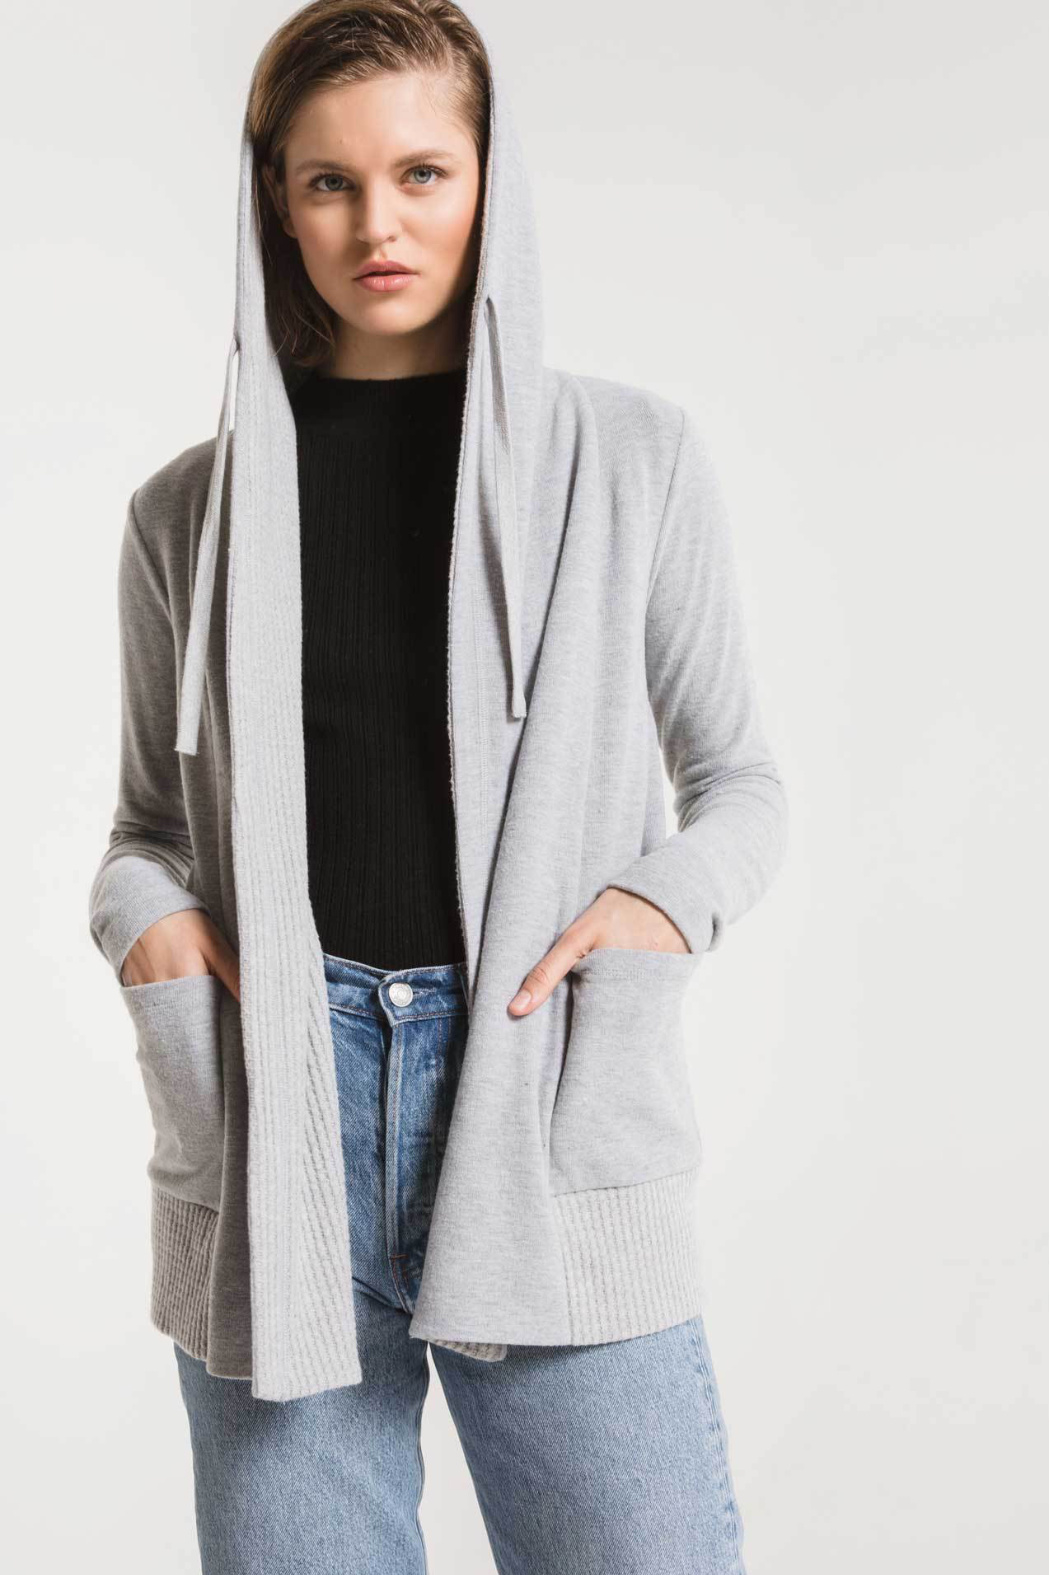 z supply Thermal Lined Soft Spun Cardigan - Back Cropped Image